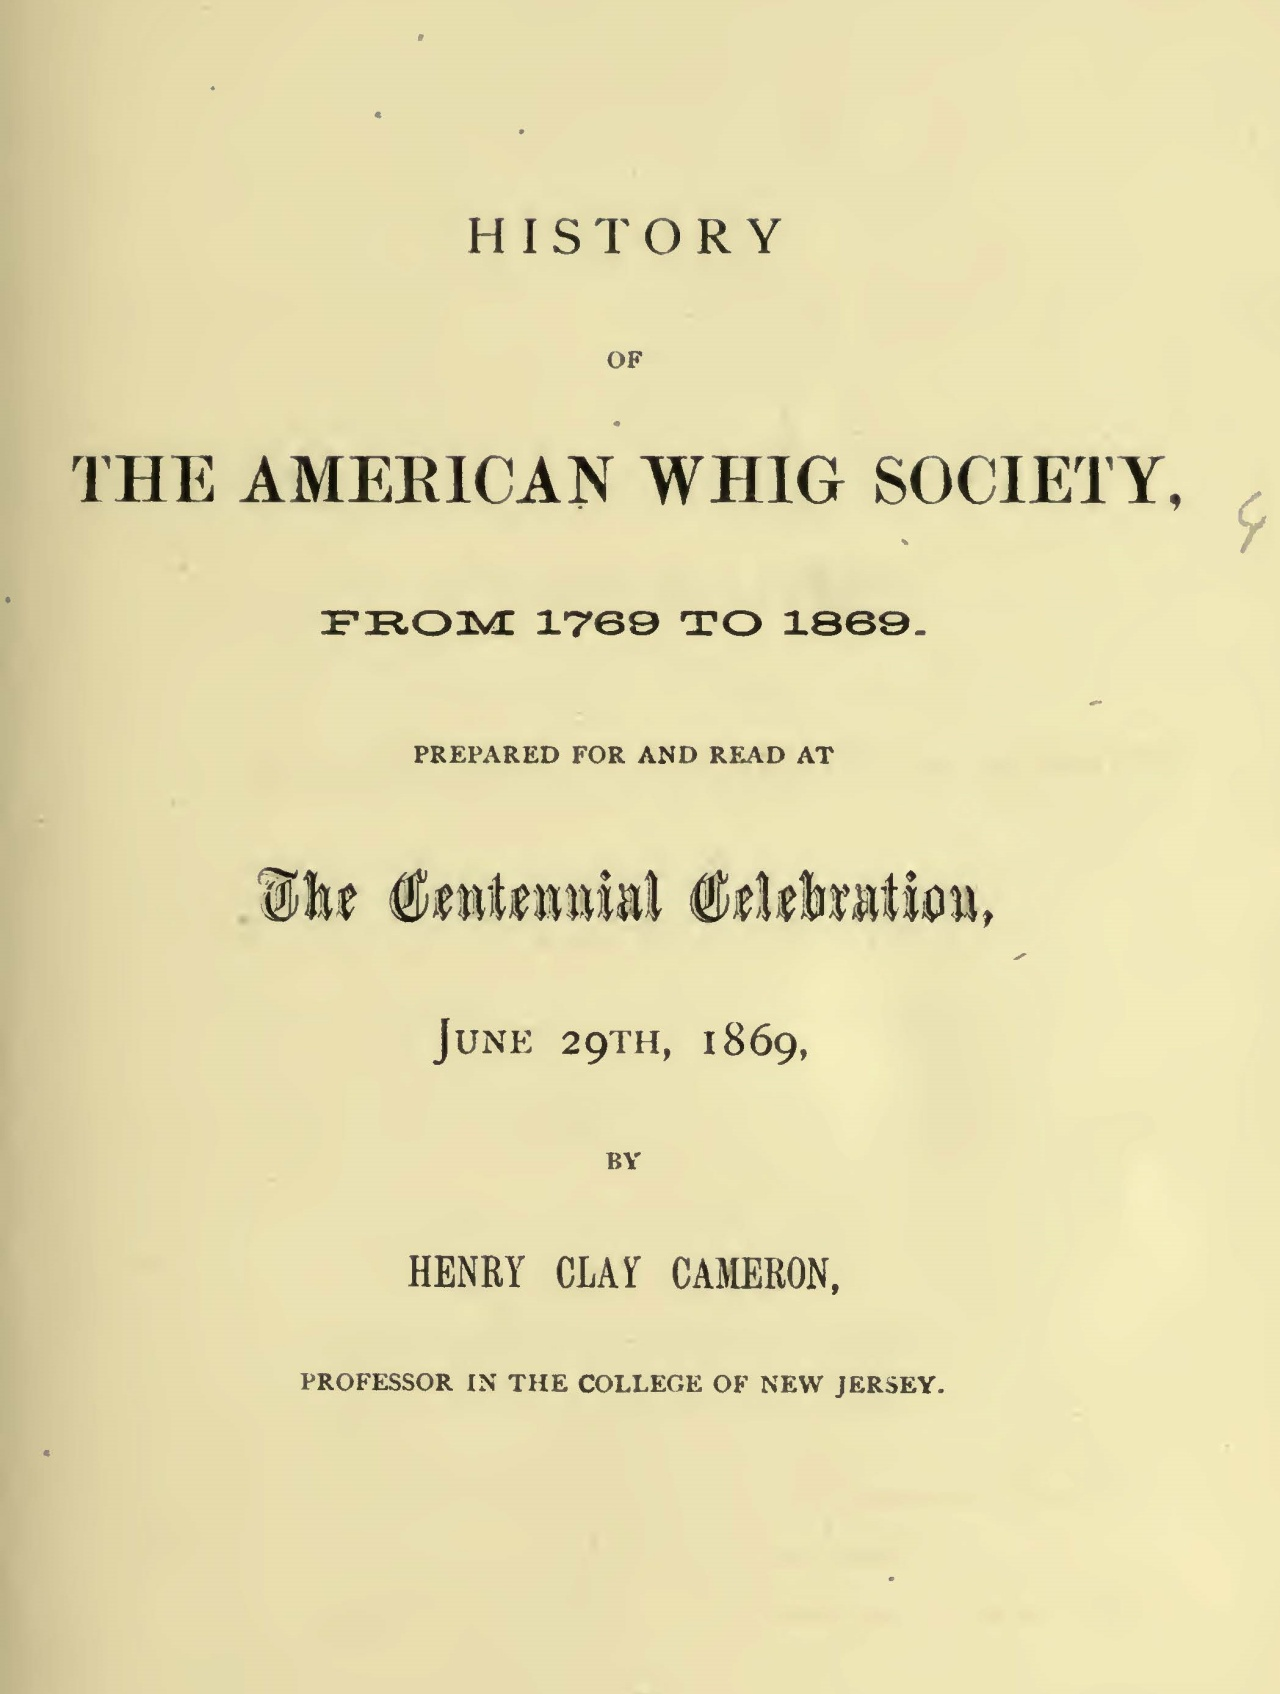 Cameron, Henry Clay, History of the American Whig Society Title Page.jpg